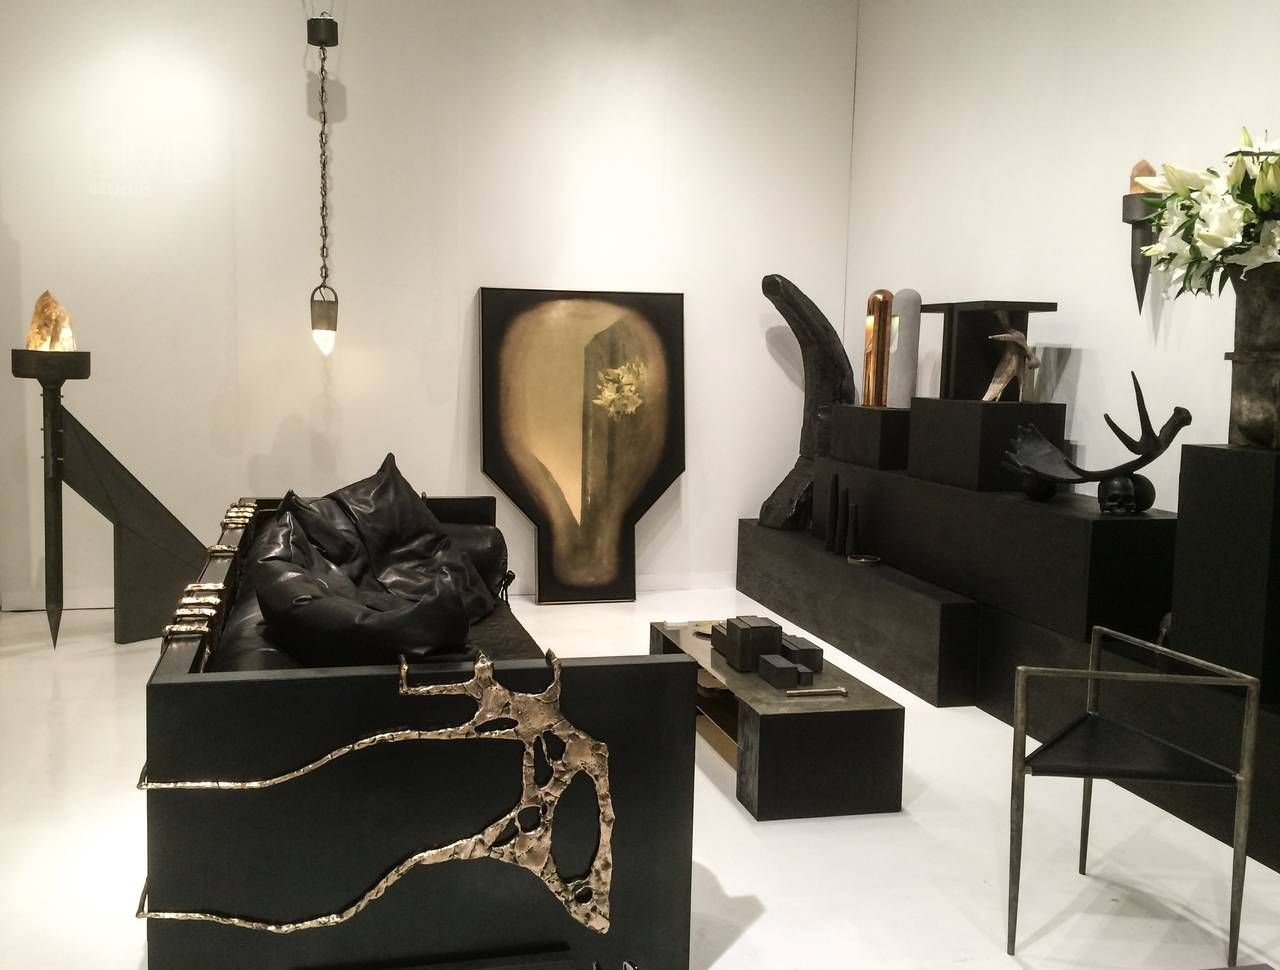 Exo sofa floor mirror mirror floor and polished brass